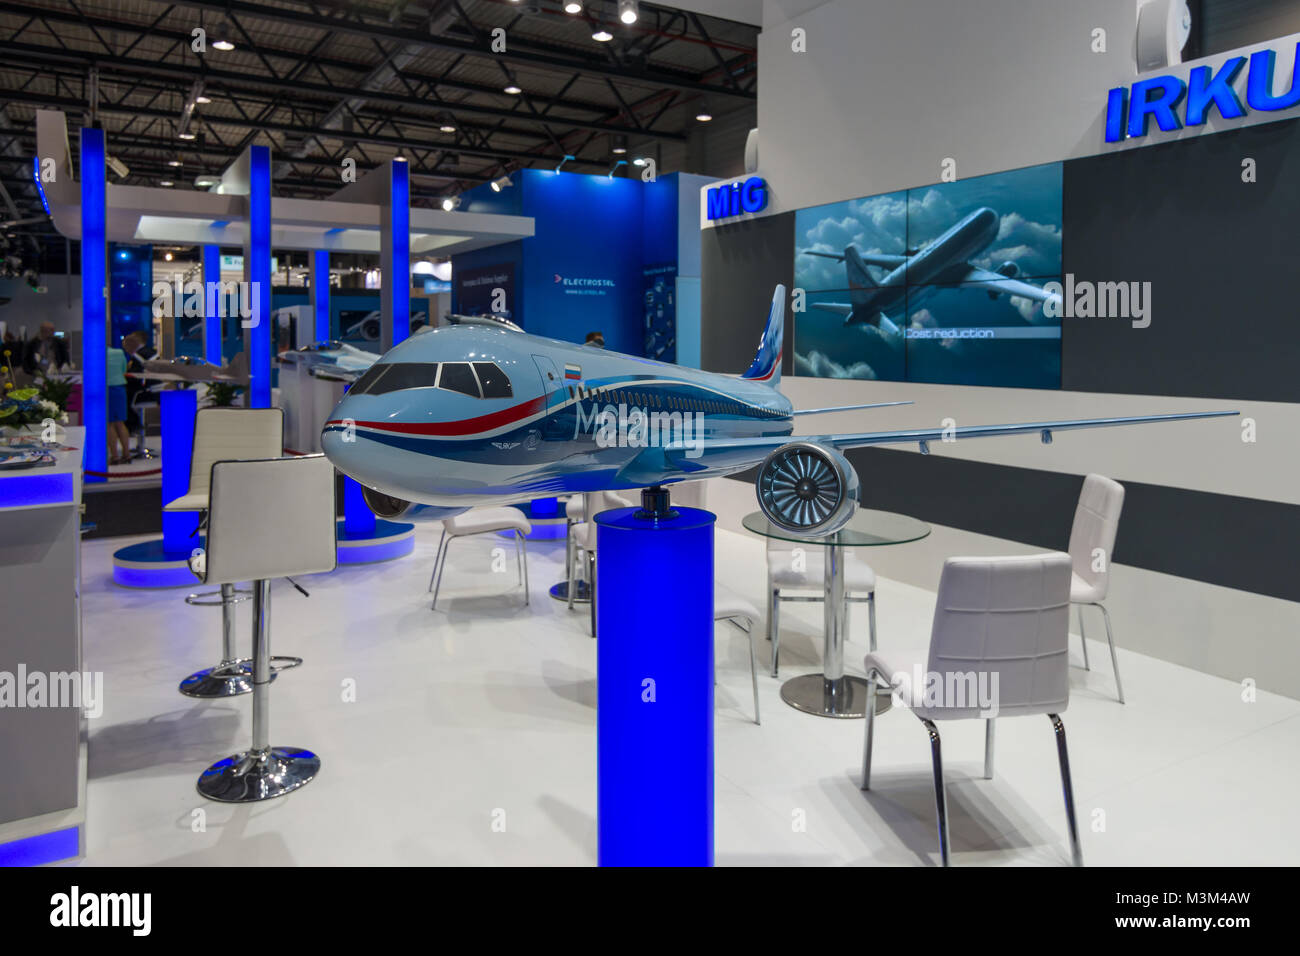 BERLIN, GERMANY - JUNE 01, 2016: The stand of Unated Aircraft Corporation (Russia). Model of Russian jet airliner - Stock Image